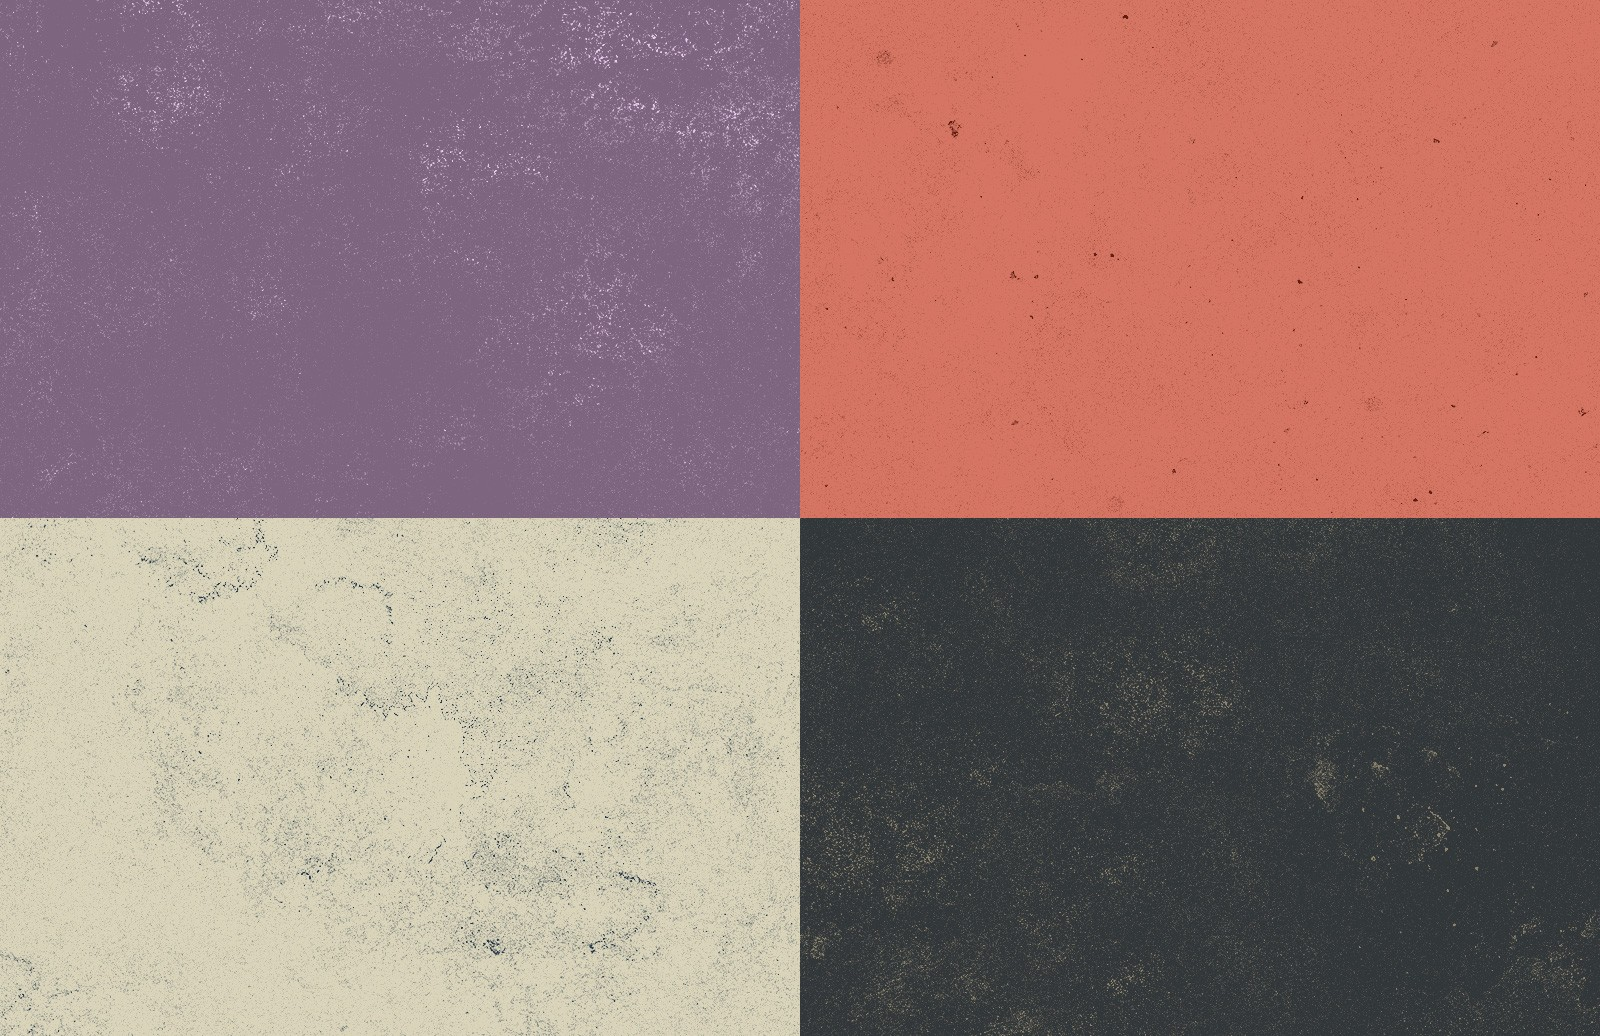 Noise   Grit  Seamless  Textures  Preview 2